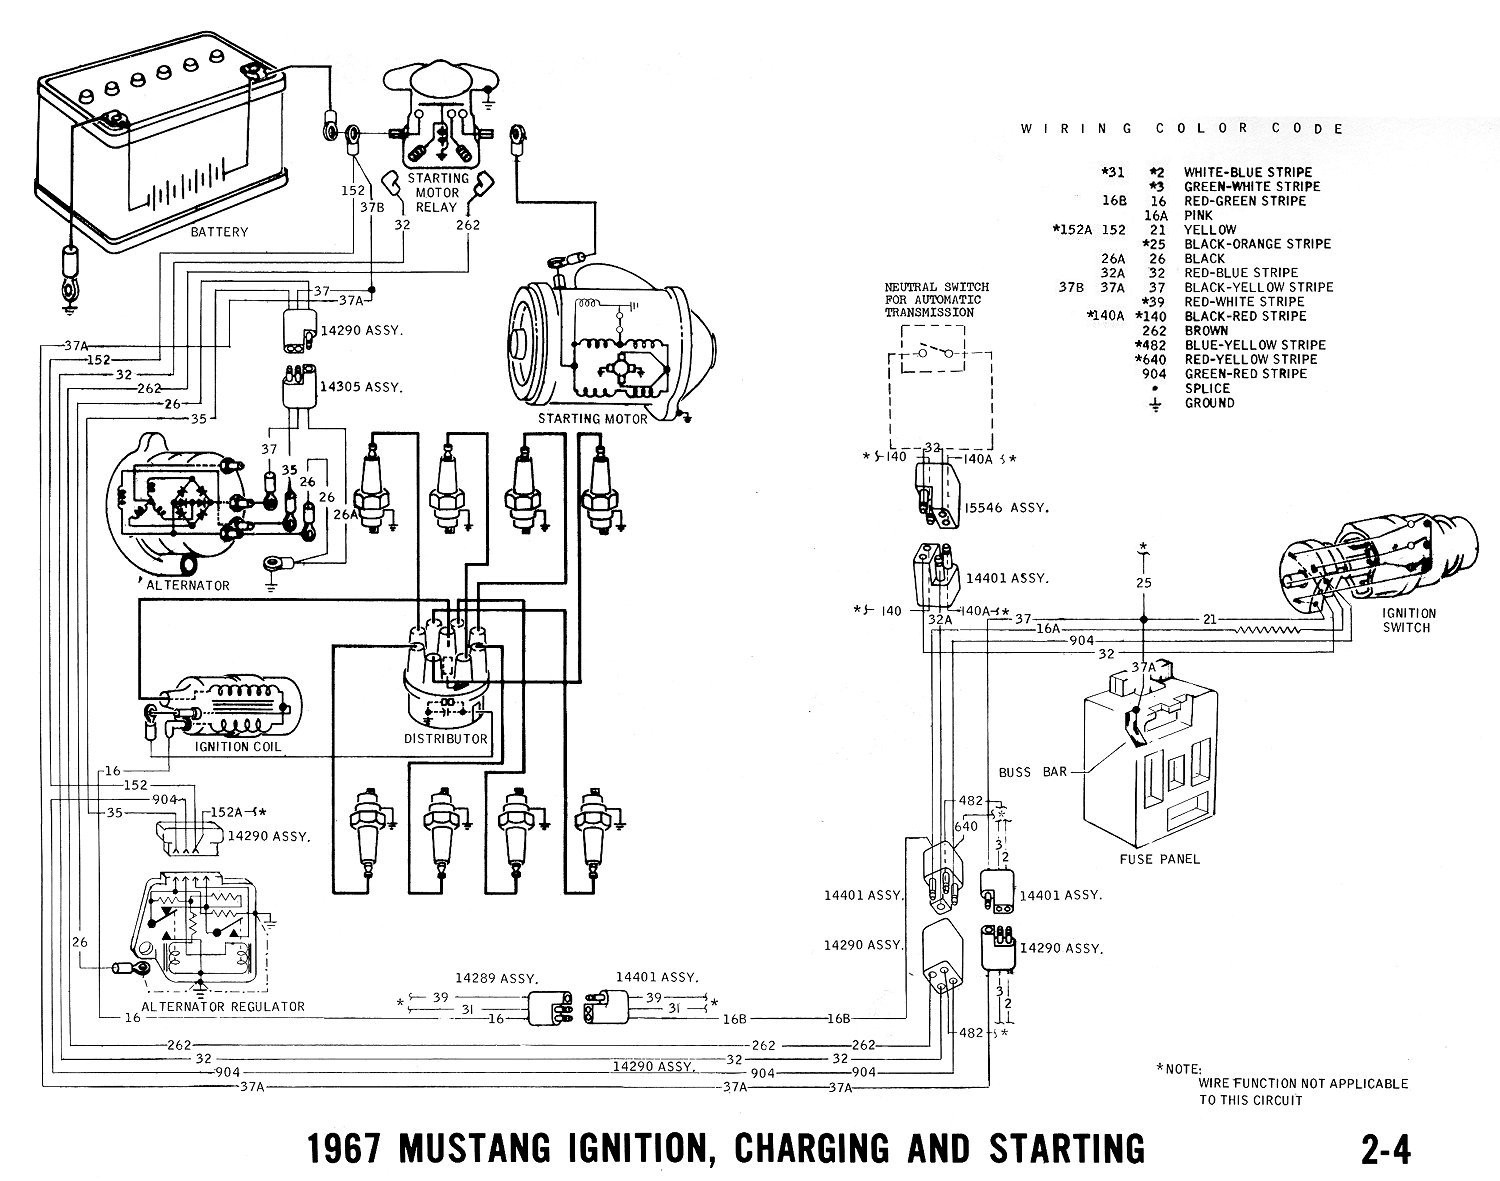 1967 Mustang Ignition, Starting And Charging DiagramAnatomy Note